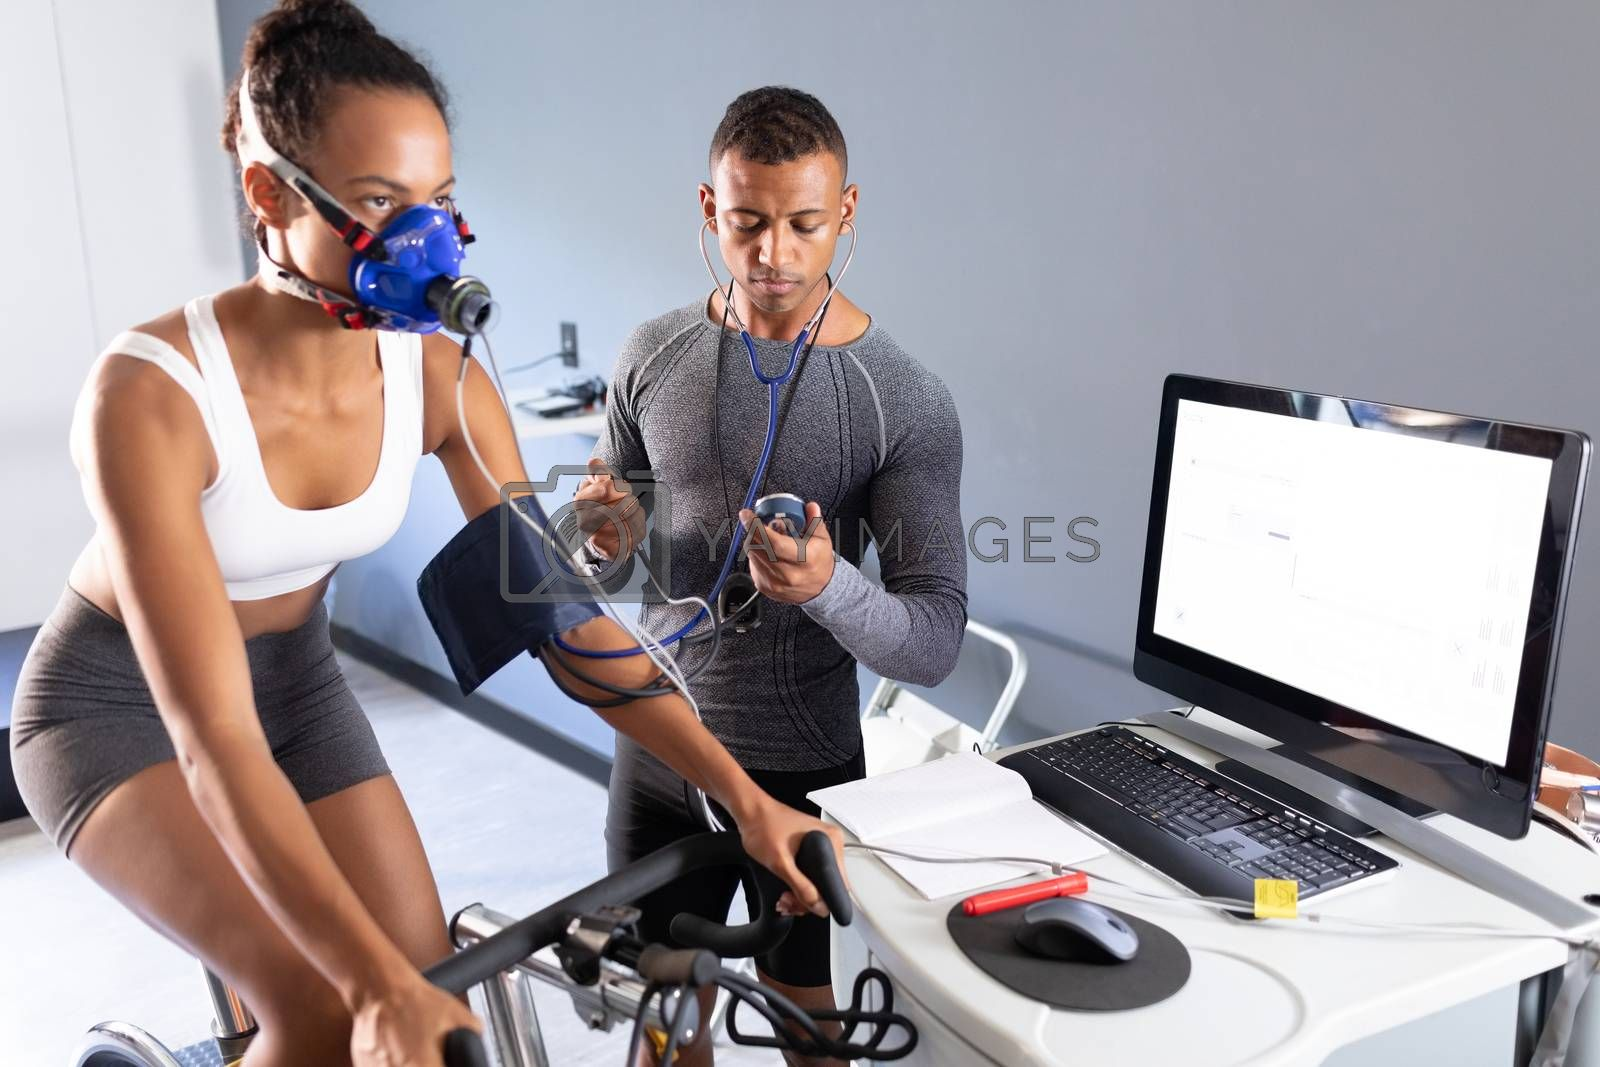 Side view of an African-American athletic woman doing a fitness test using a mask connected to a monitor while riding an exercise bike and an African-American man measuring her blood pressure inside a room at a sports center. Bright modern gym with fit healthy people working out and training. Athlete testing themselves with cardiovascular fitness test on exercise bike